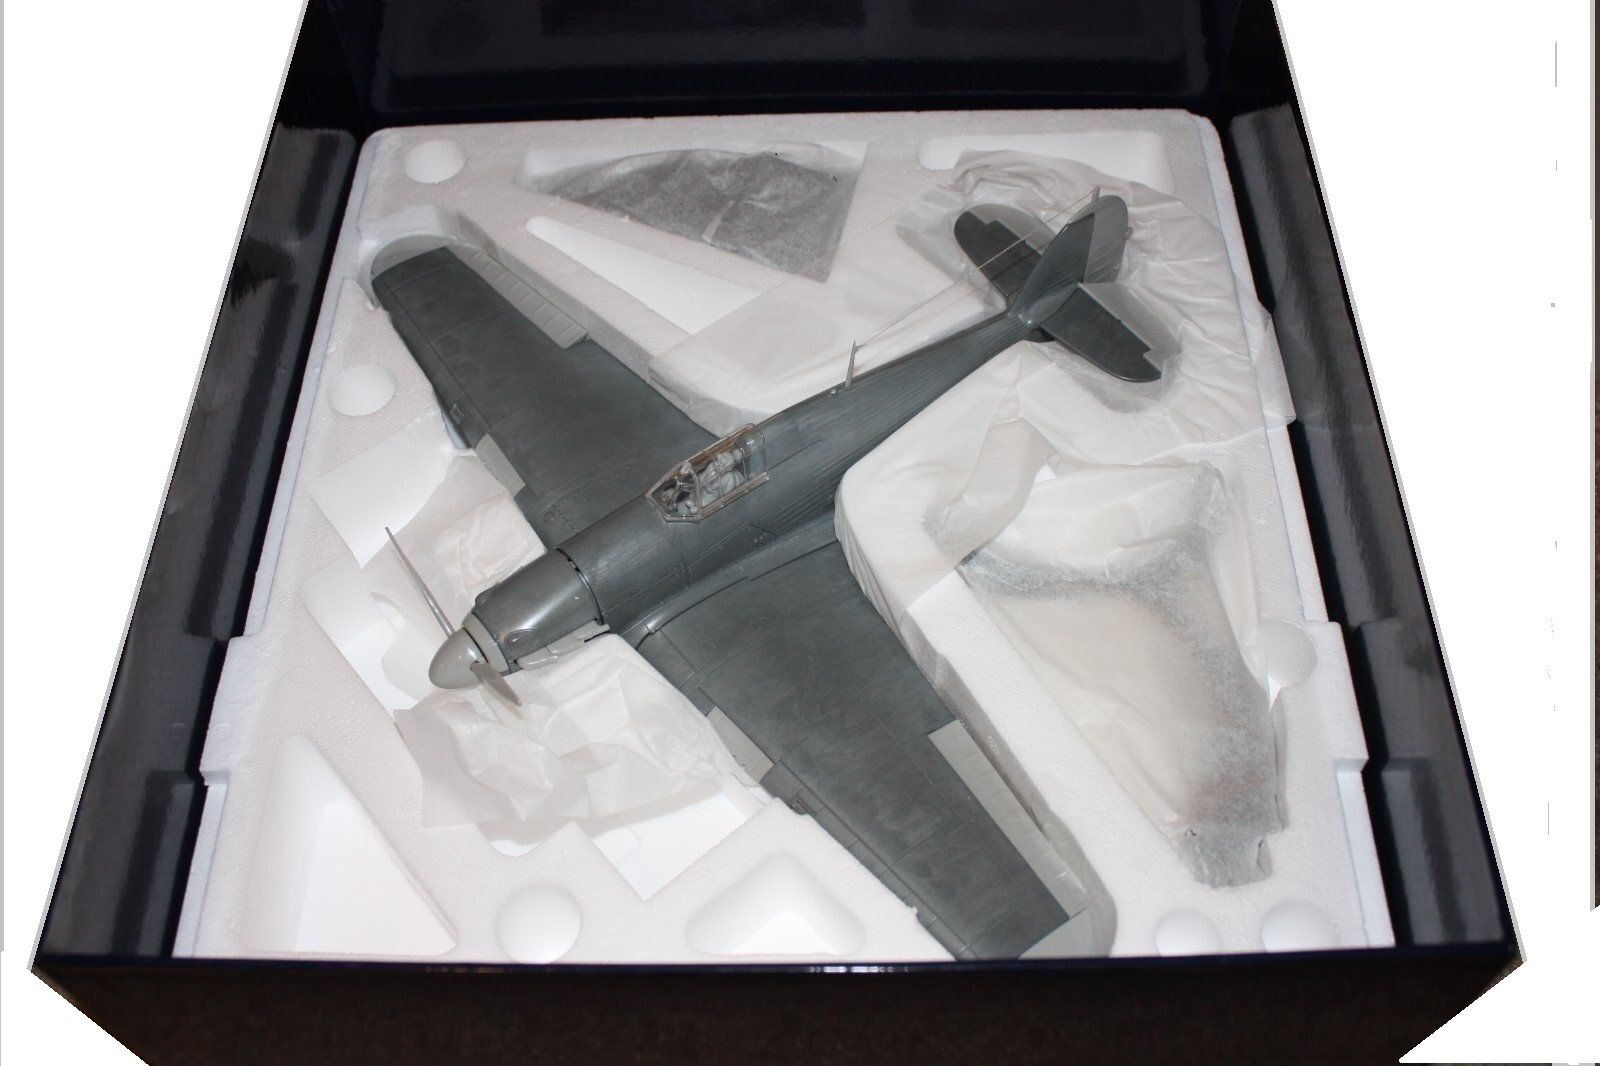 CORGI AA35506, HAWKER HURRICANE IA, PRE-PRODUCTION RAW METAL CASTING. VERY RARE